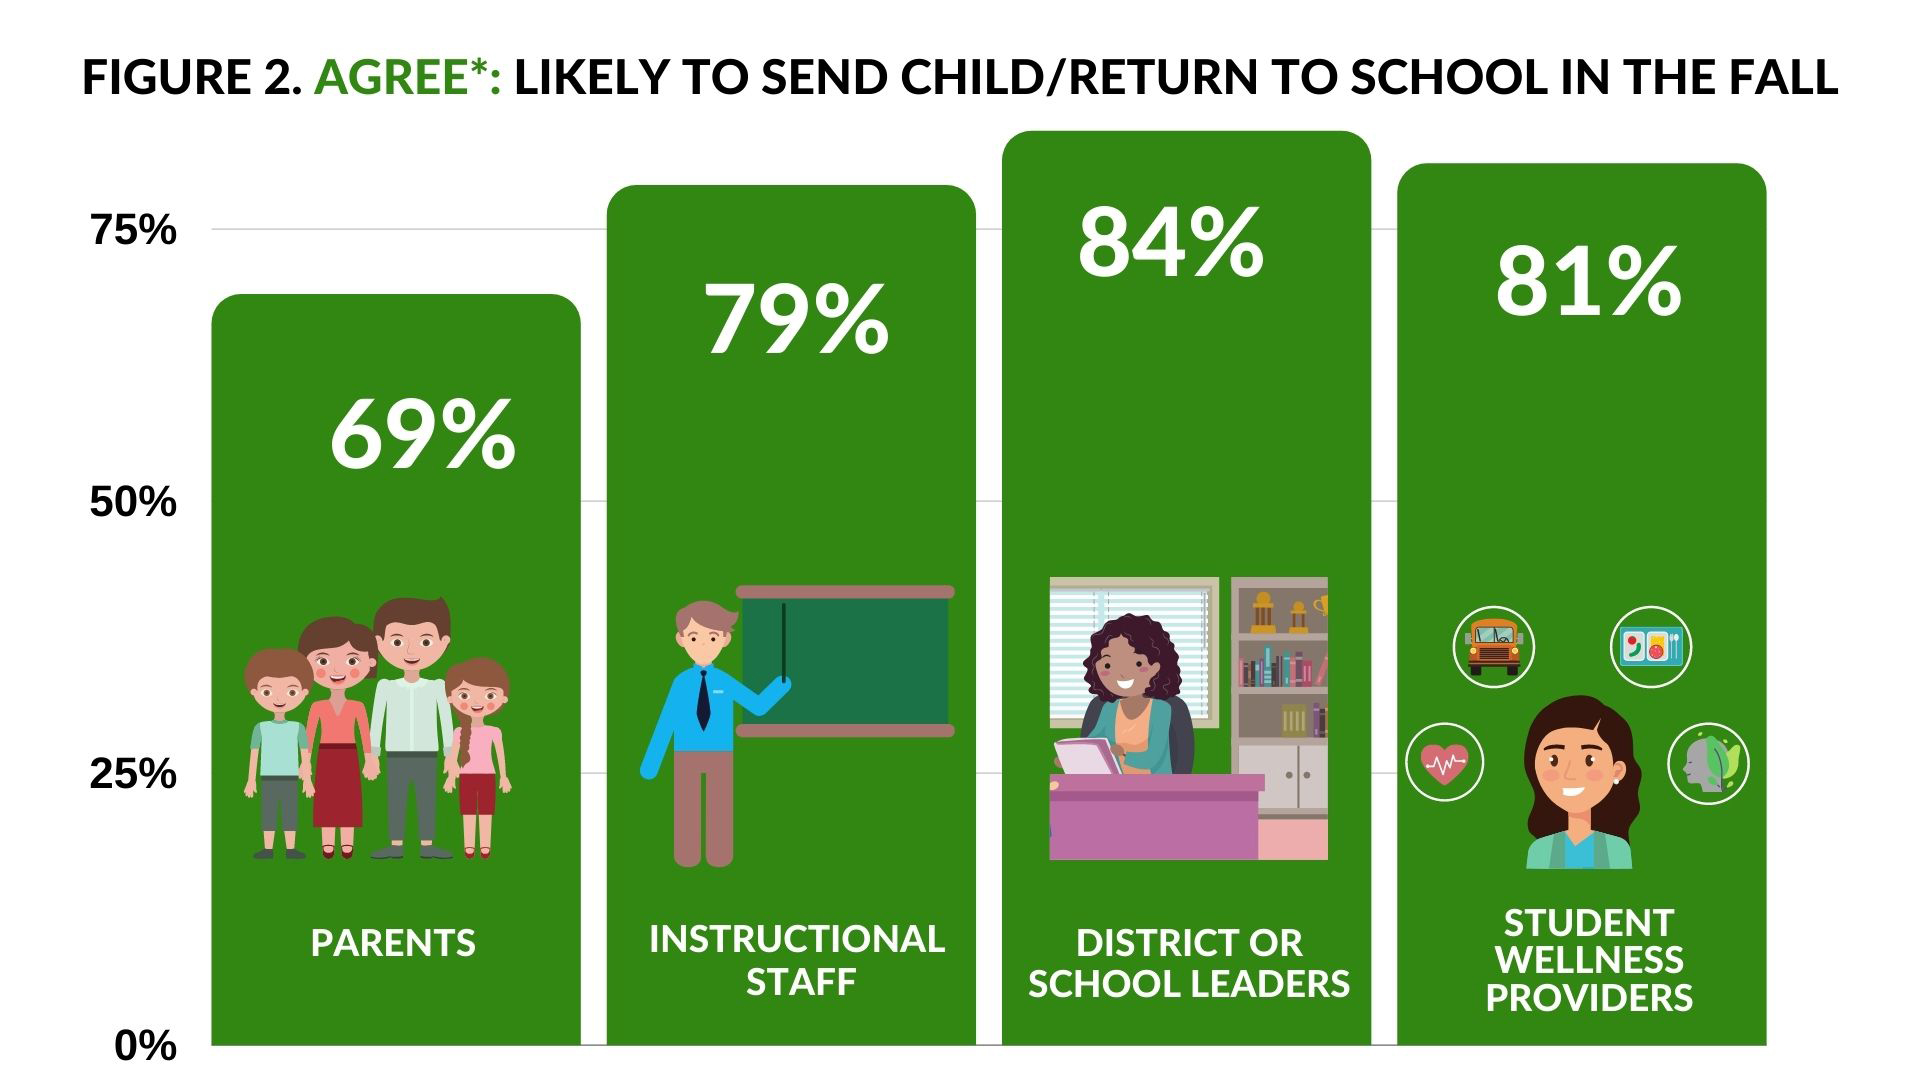 Agree send child to school in fall- 69% parents; 79% Instructional Staff; 84% District of School Leaders; 81% Student Wellness Providers